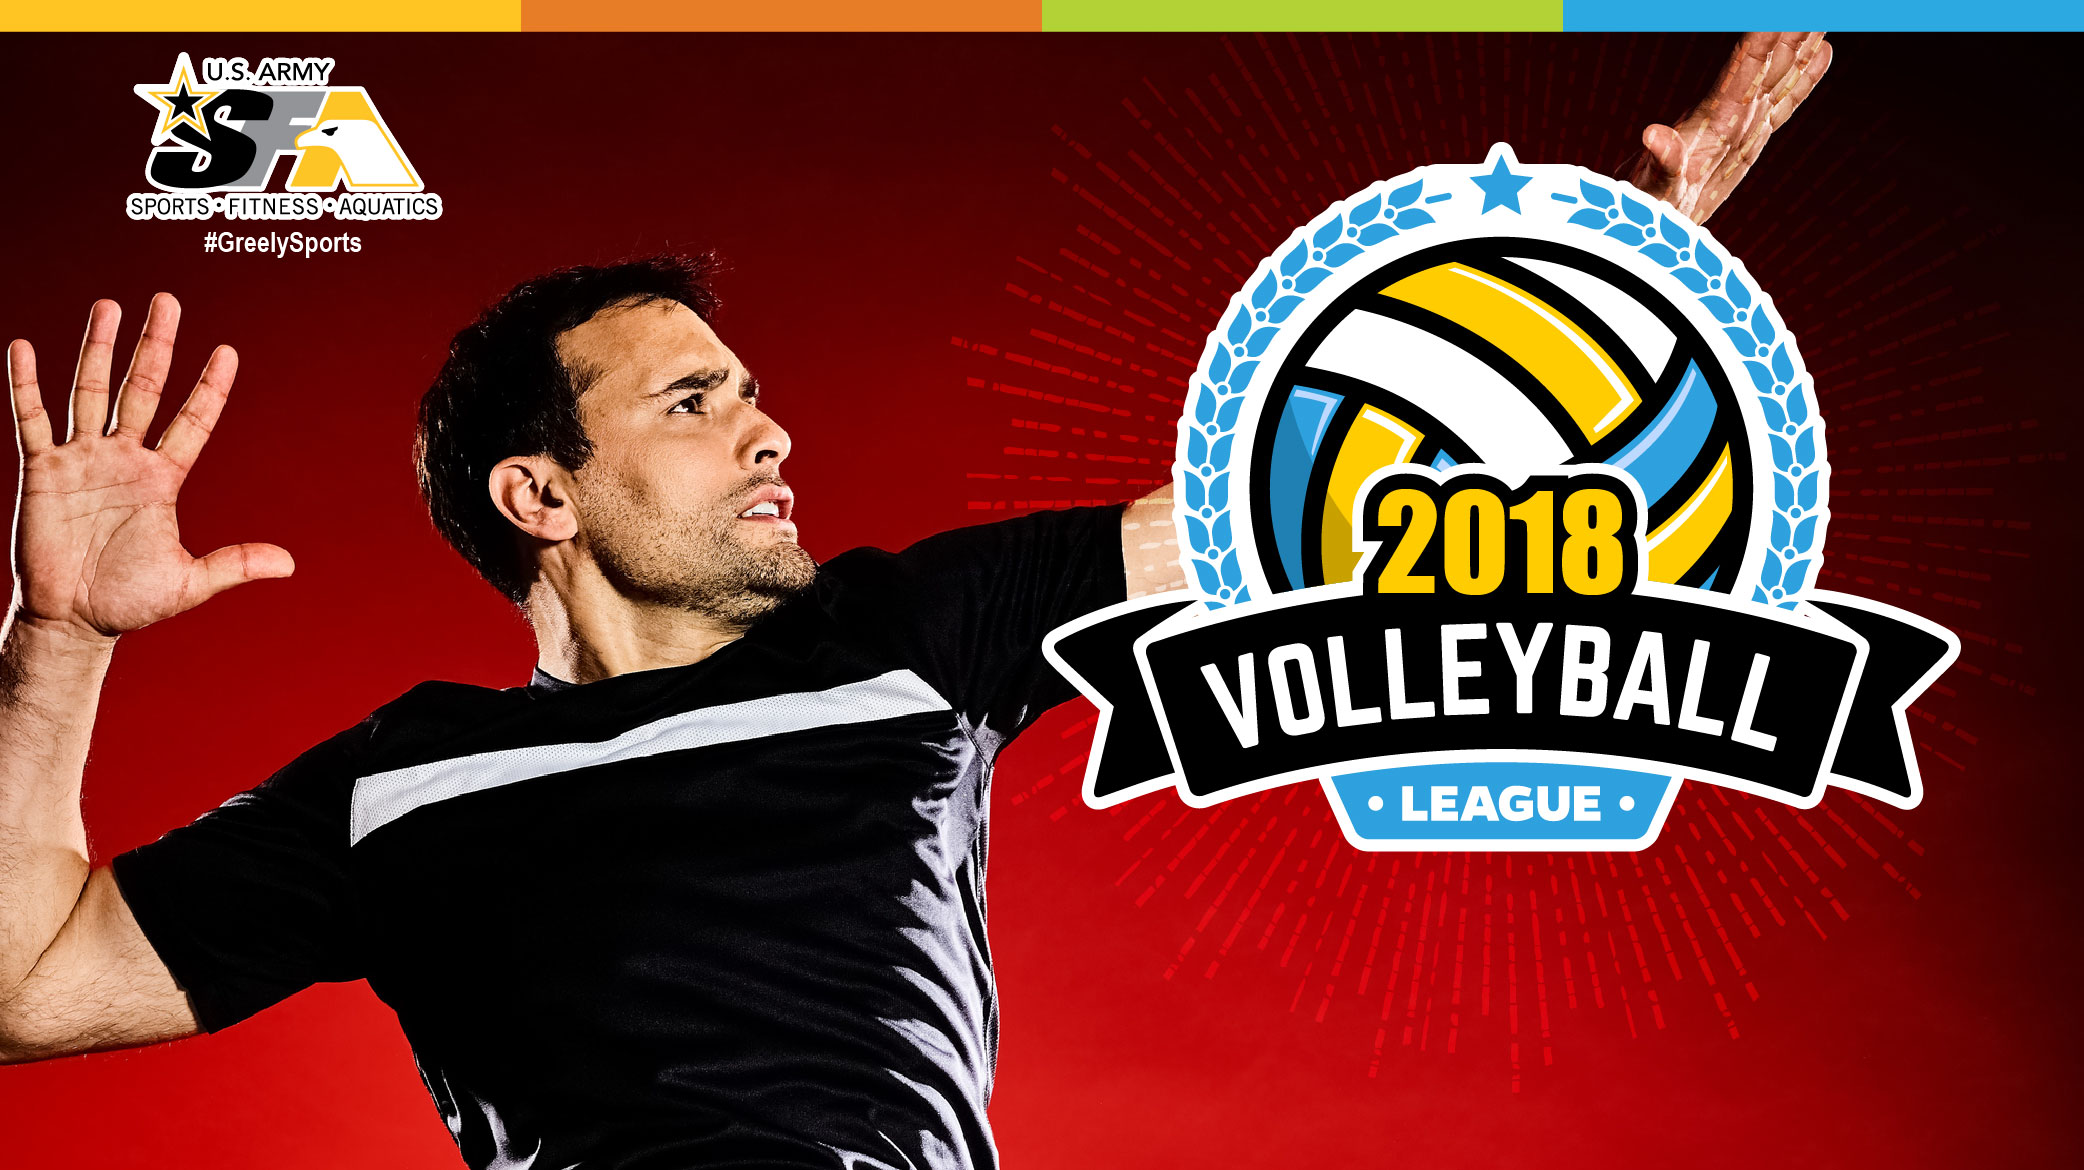 Volleyball League 2018